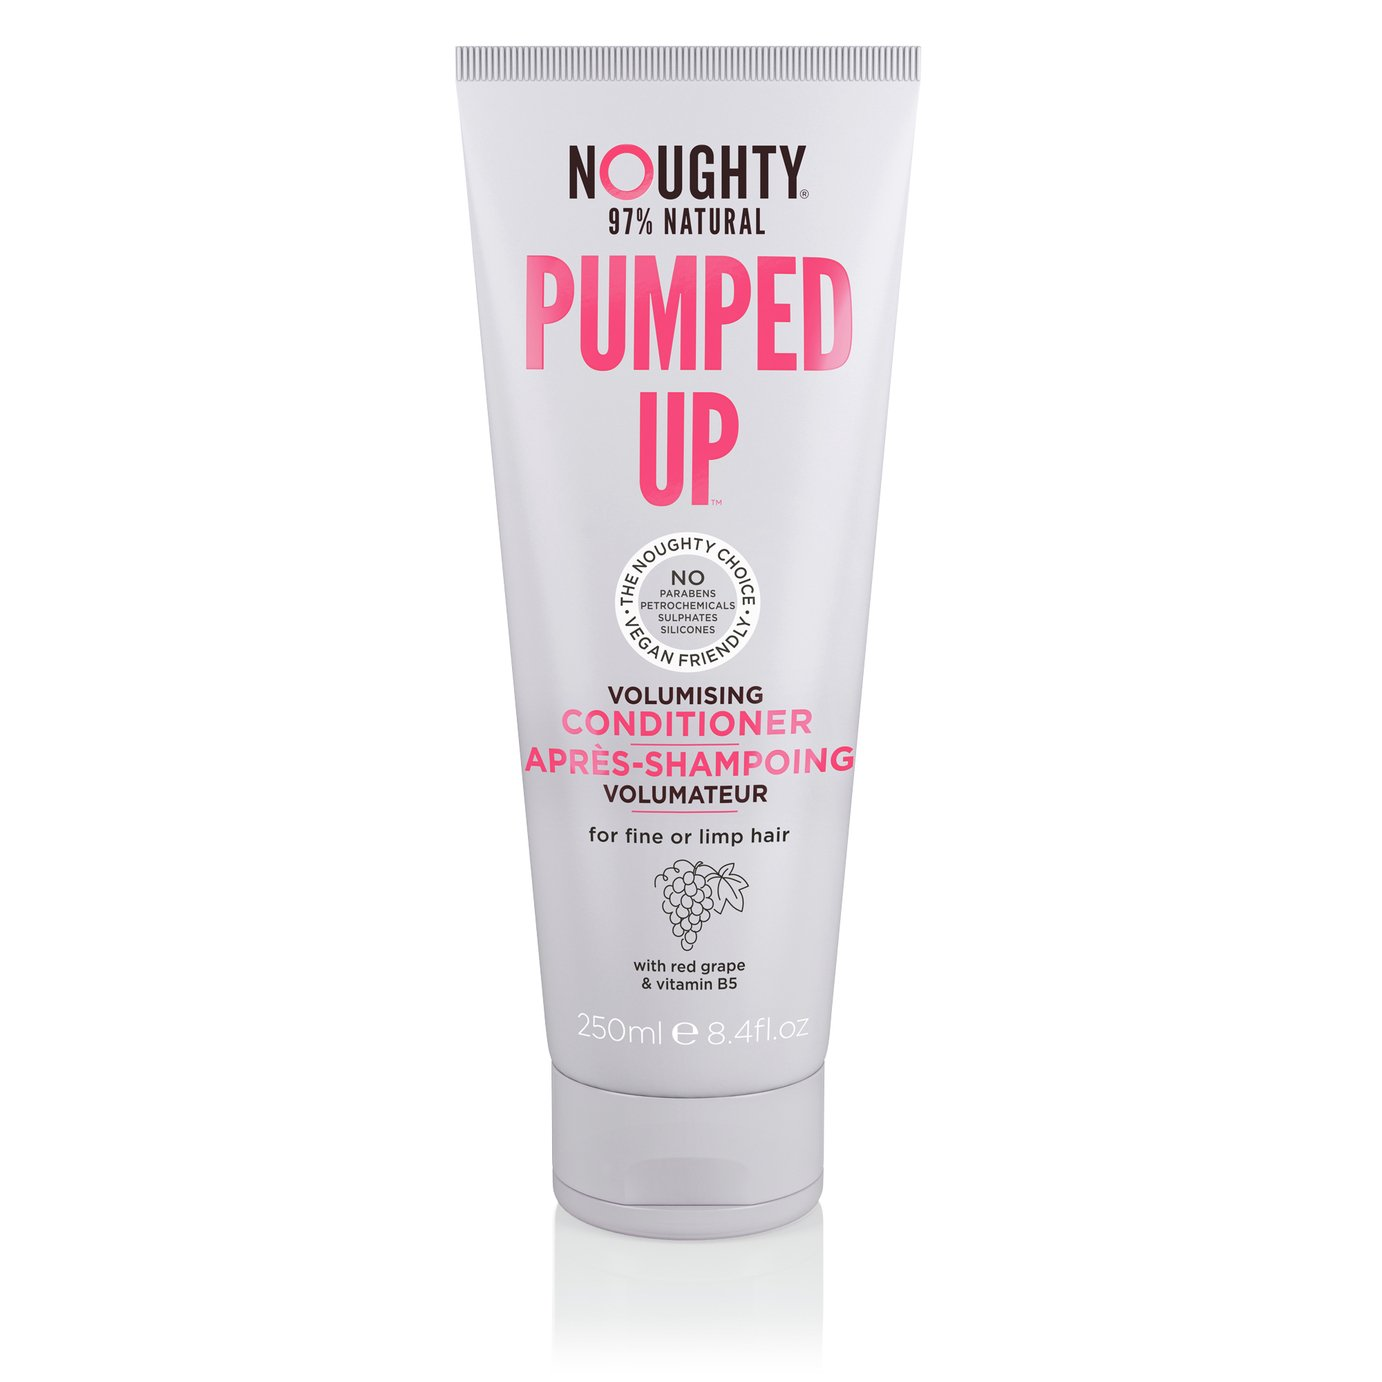 Noughty Pumped Up Conditioner - 250ml